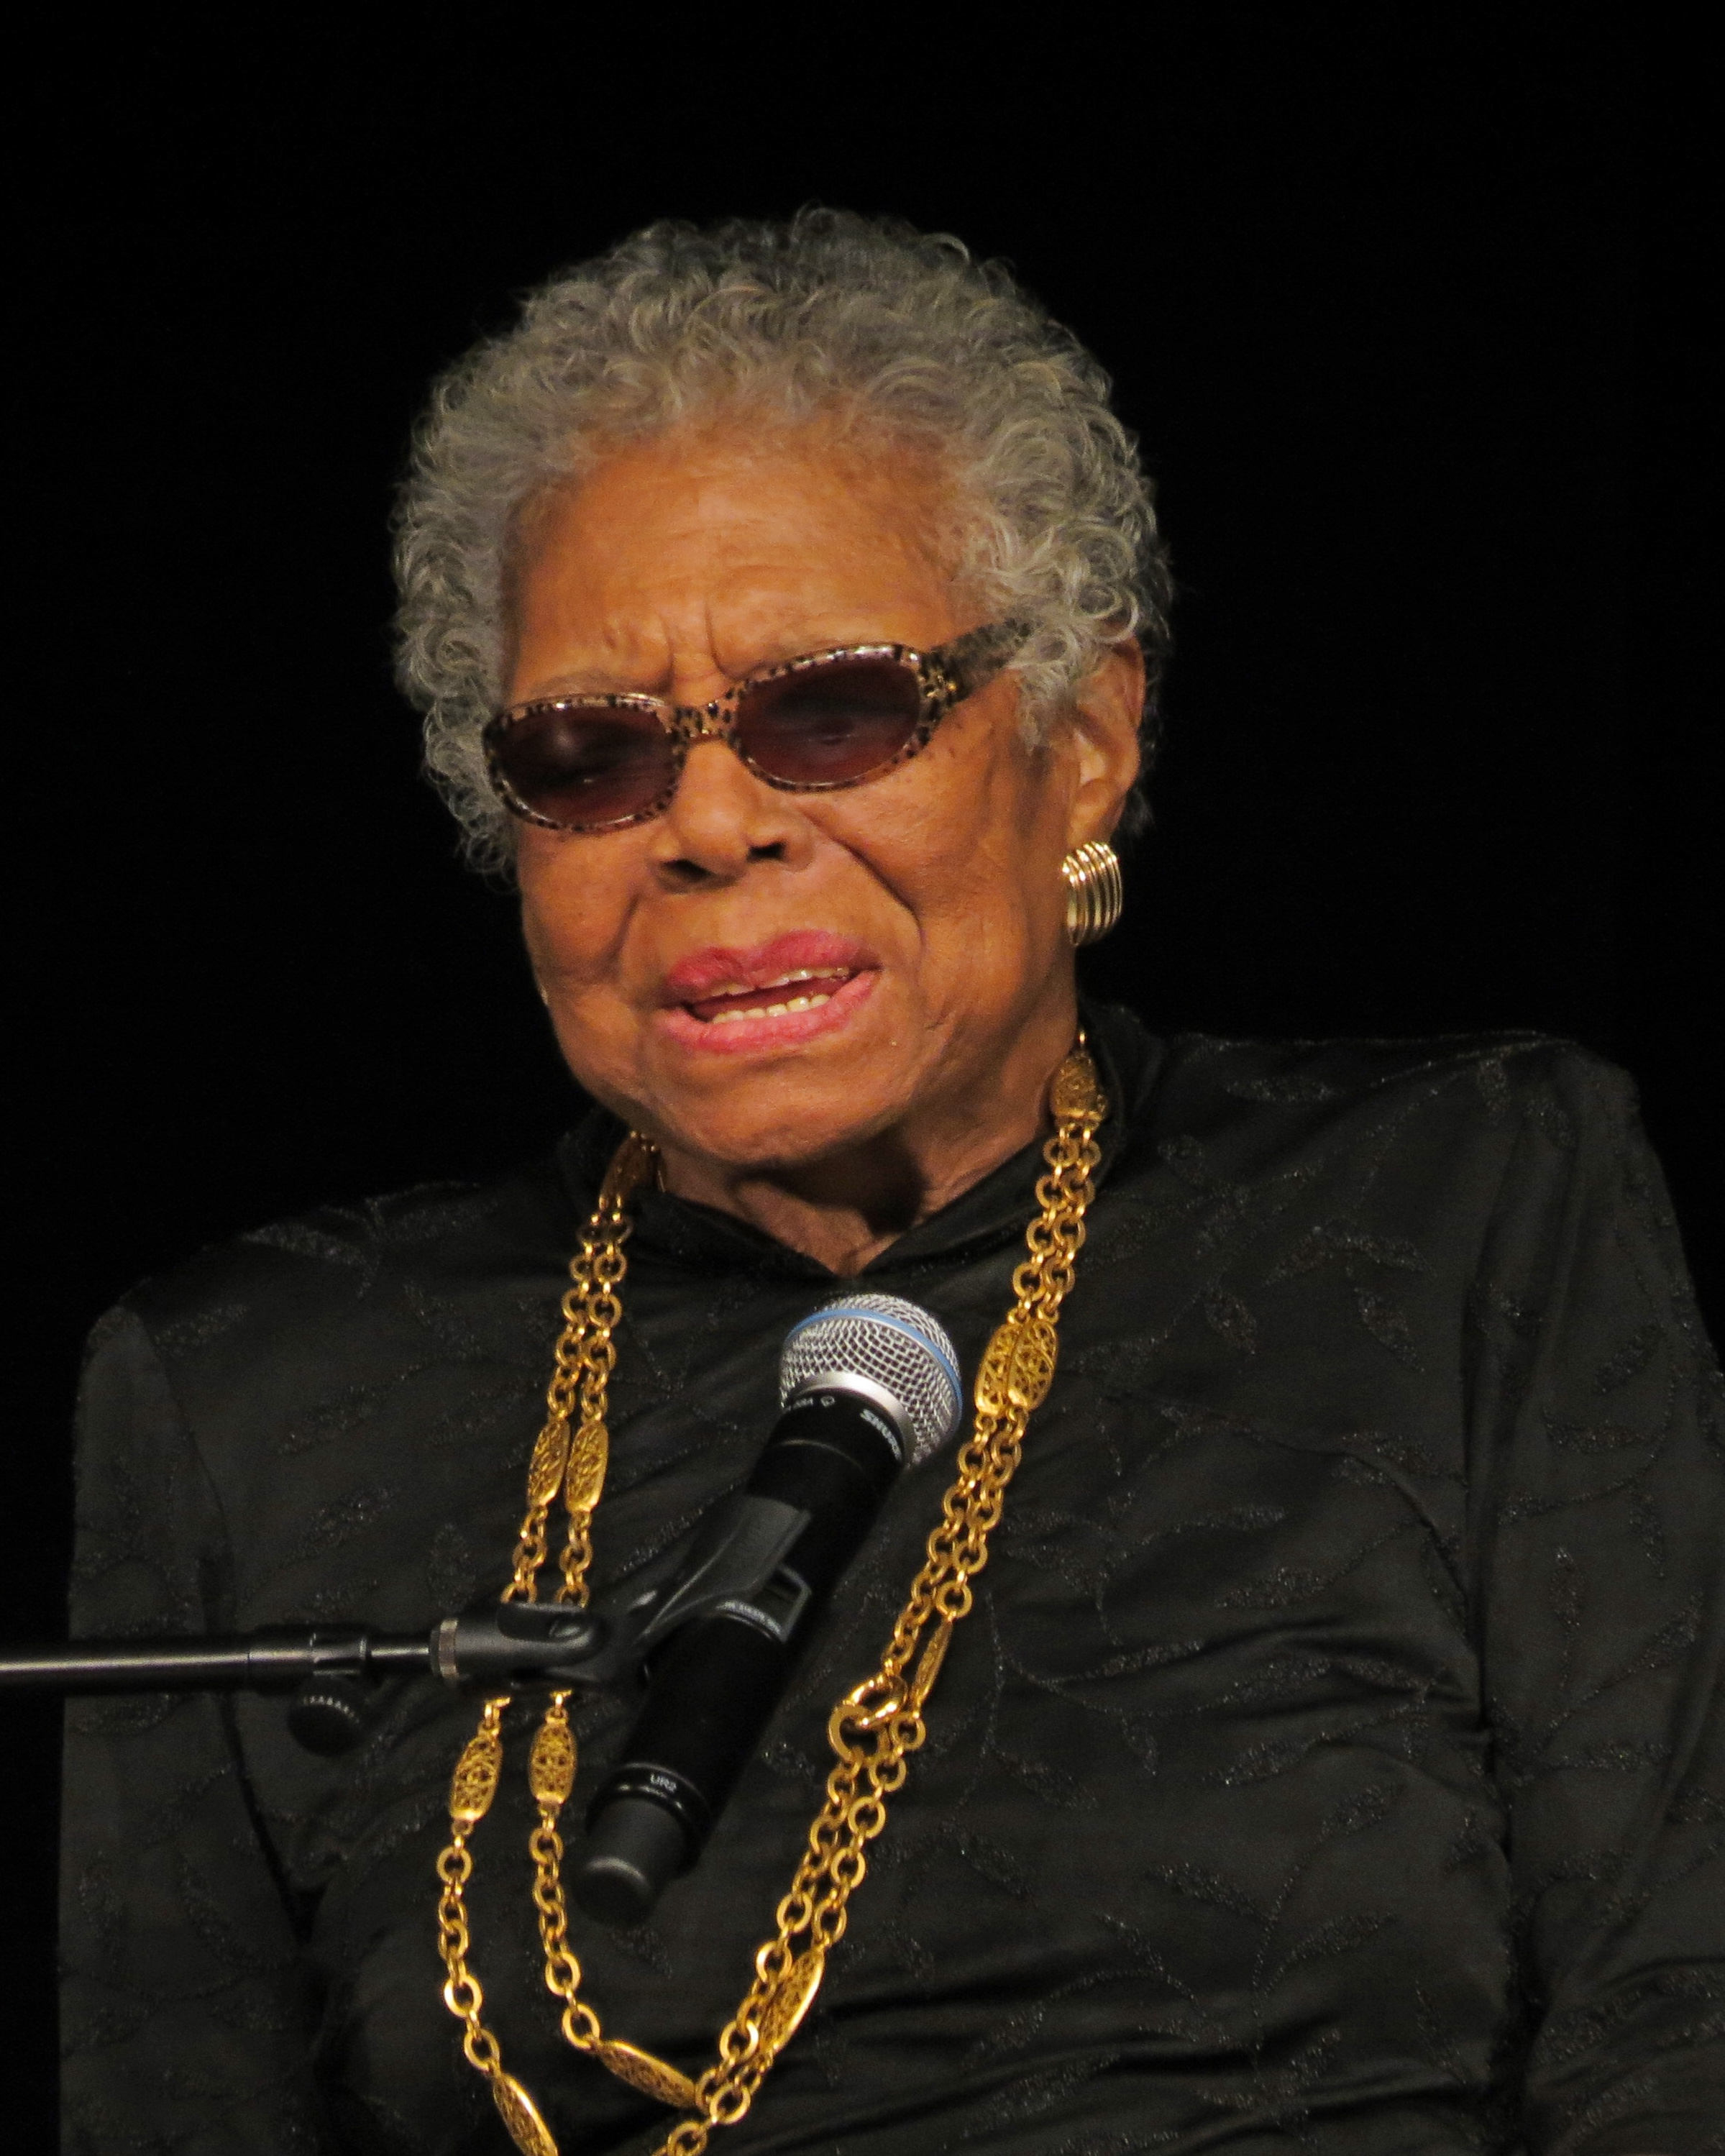 Angelou at York College in February 2013 By York College ISLGP - https://www.flickr.com/photos/65767546@N08/8449738207/, CC BY 2.0, https://commons.wikimedia.org/w/index.php?curid=33057513